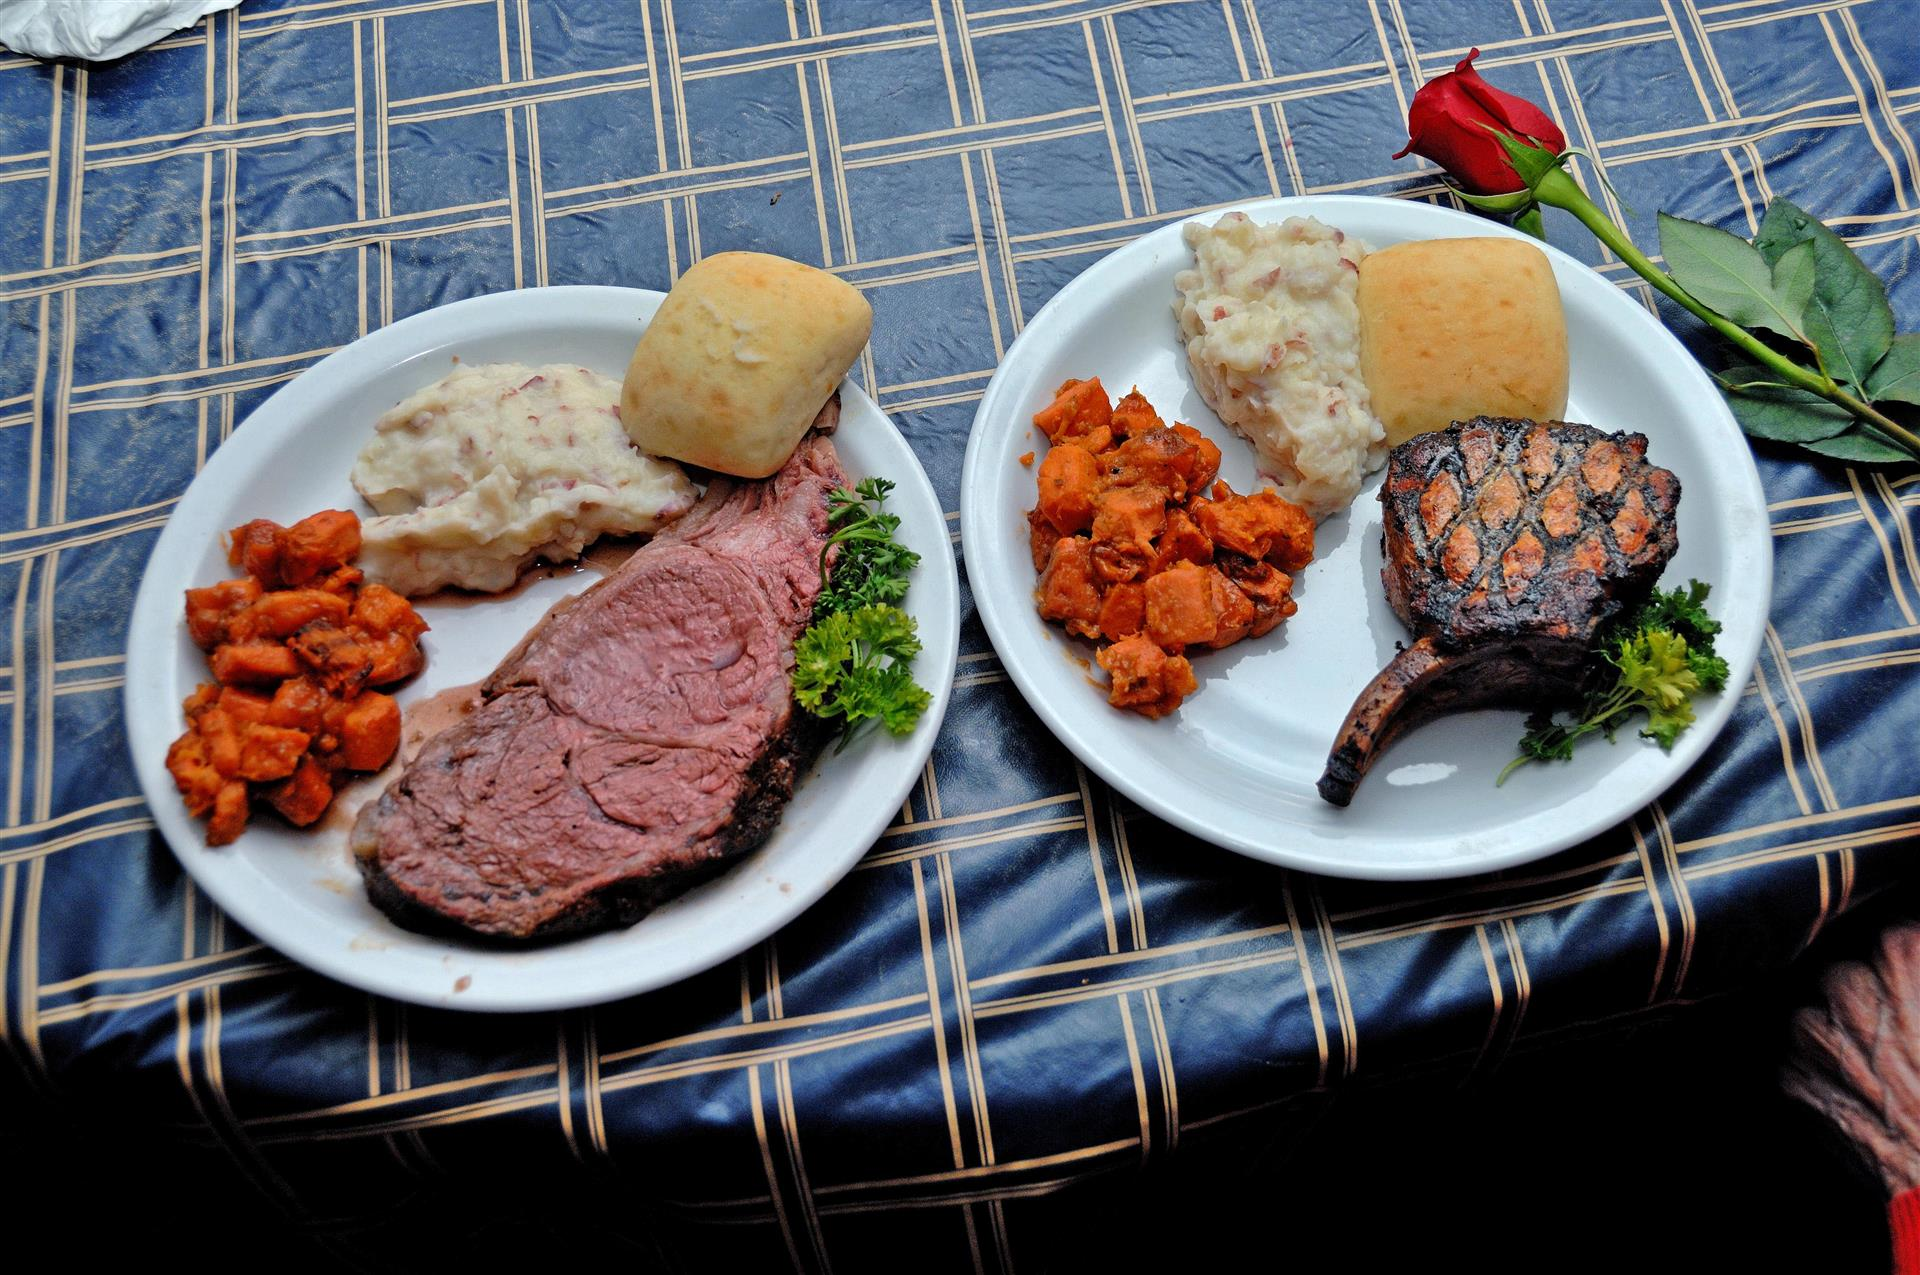 two dishes on a table with grilled meat with a side of mashed potatoes, biscuit and sweet potatoes